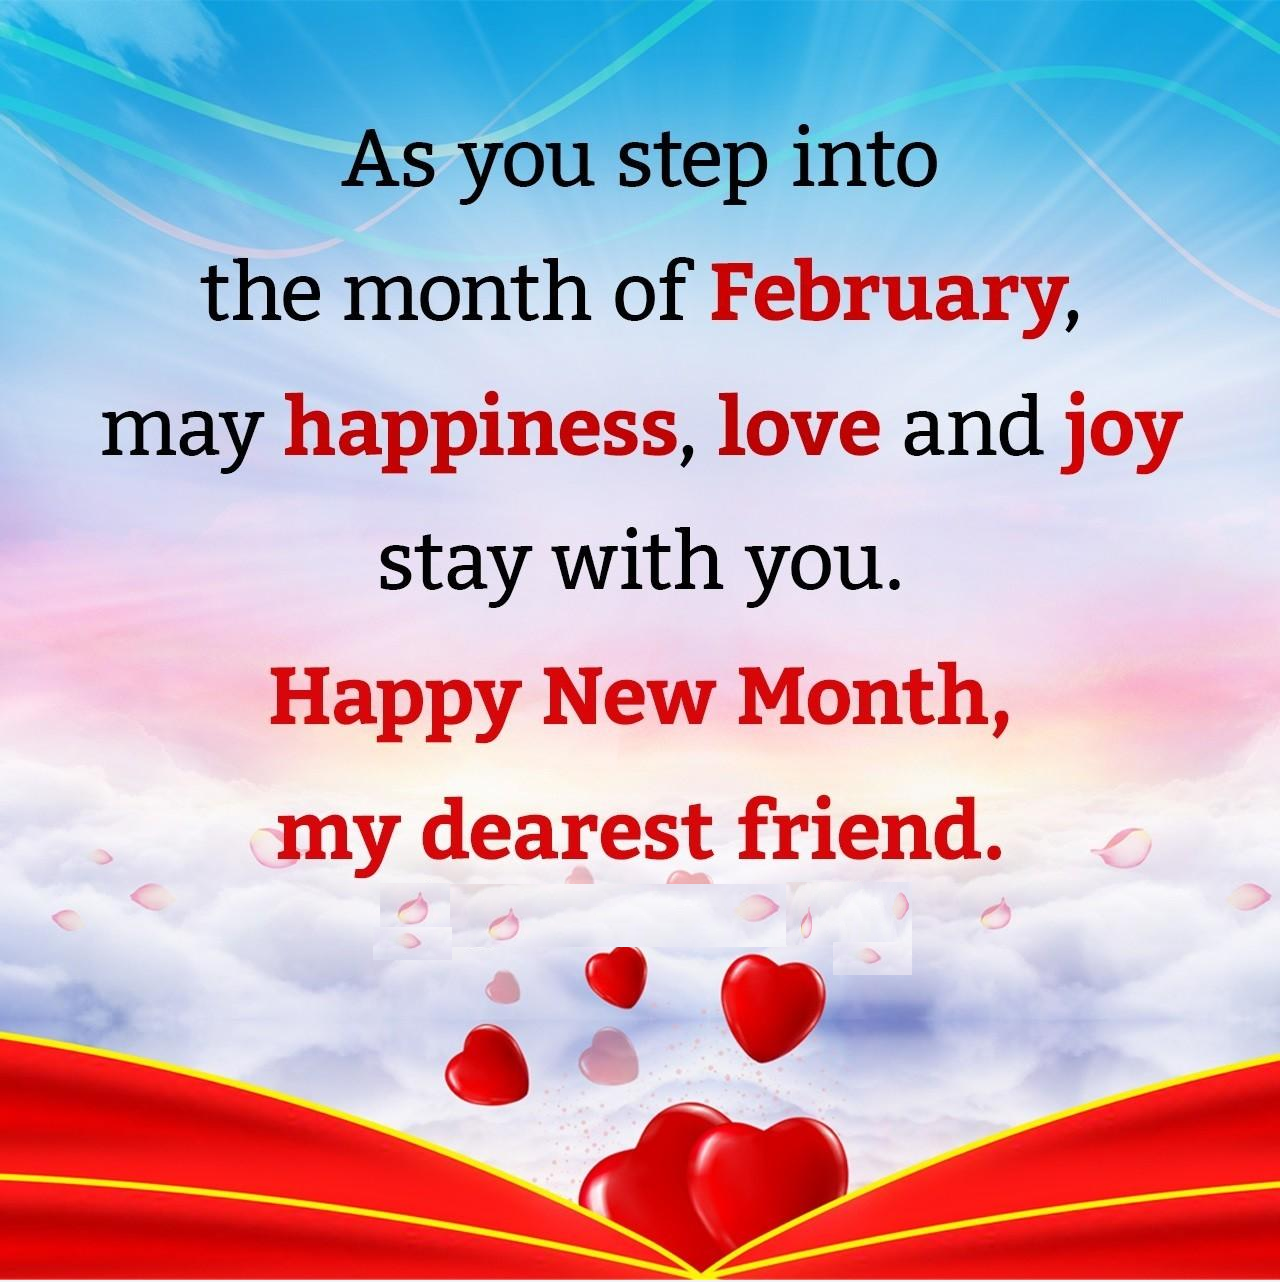 february new month wishes